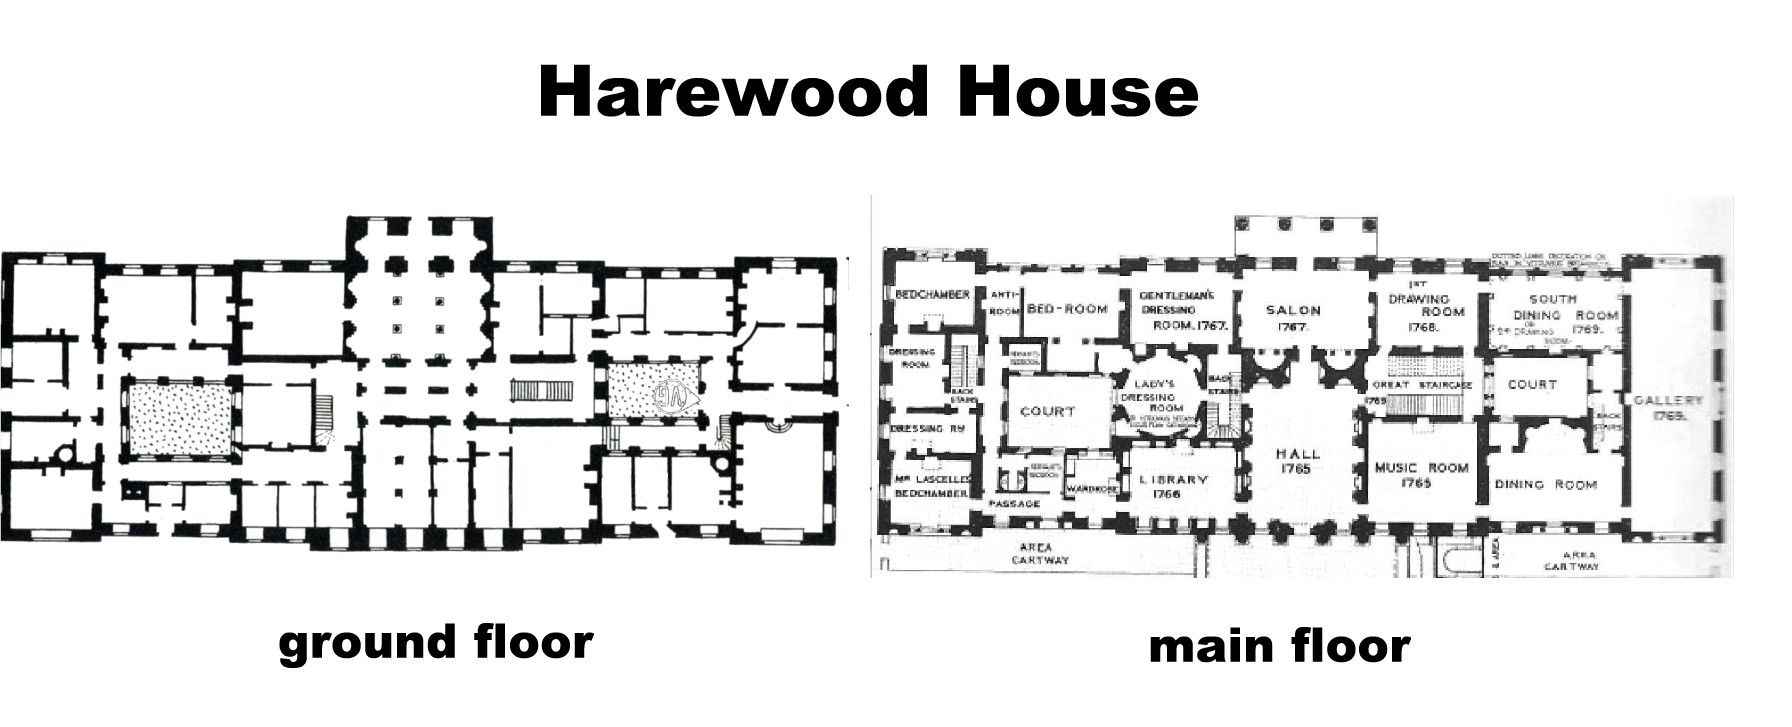 Harewood House ground 1st floor NOTE click on image for – Harewood House Floor Plan